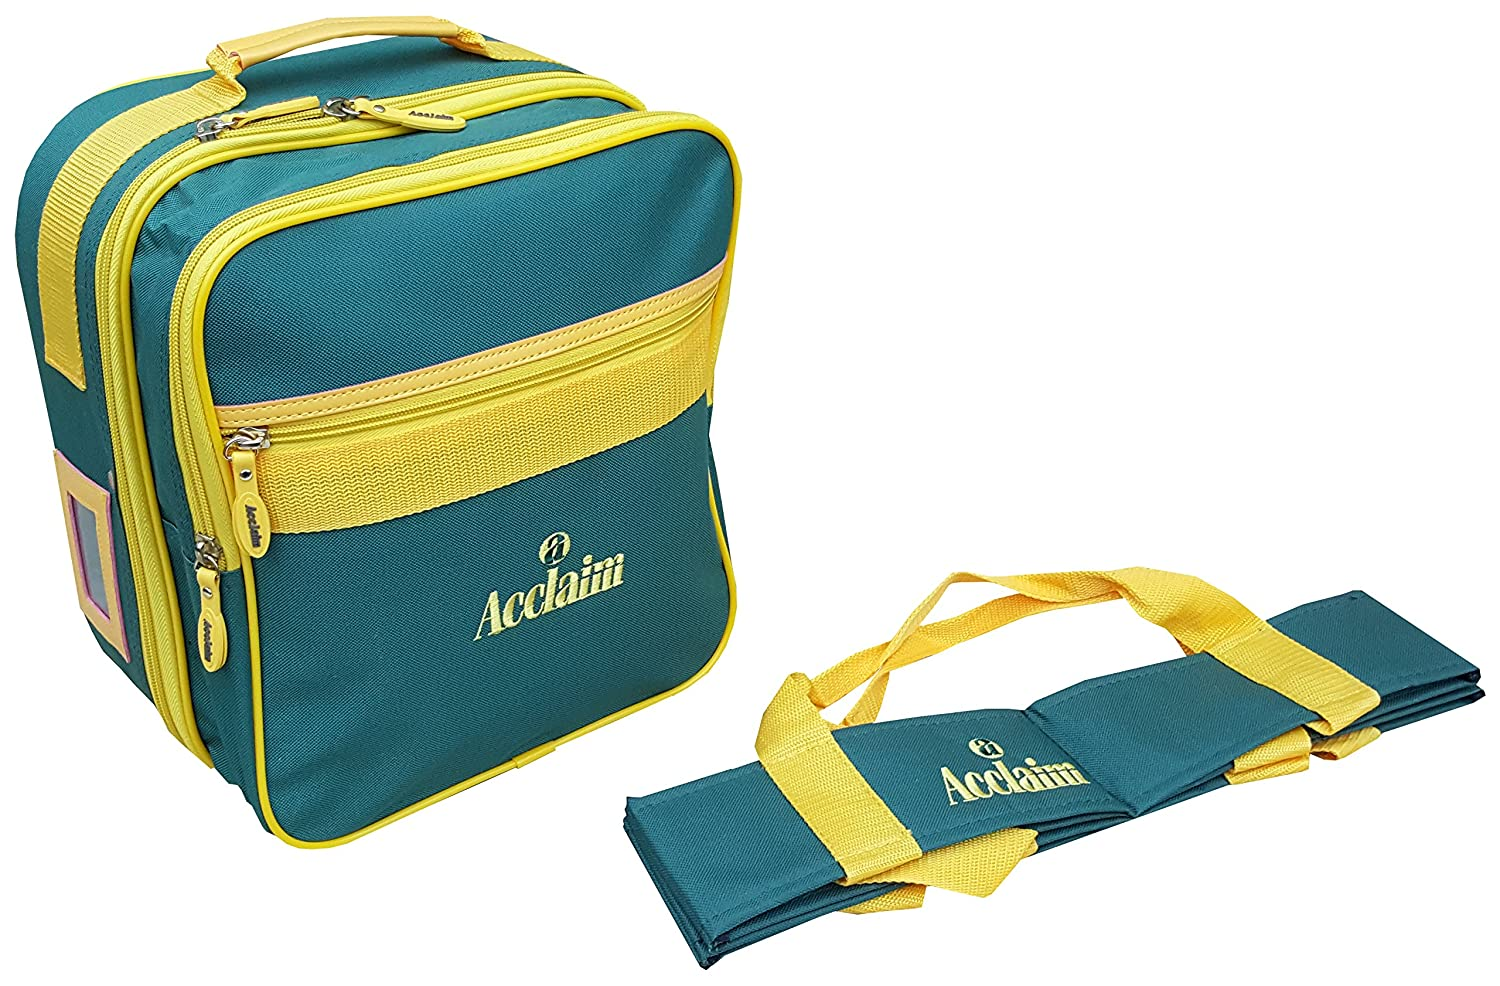 Acclaim Alnwick Nylon Four Bowl Level Lawn Flat Green Short Mat Locker Bowls Bag & Four Bowls Carrier